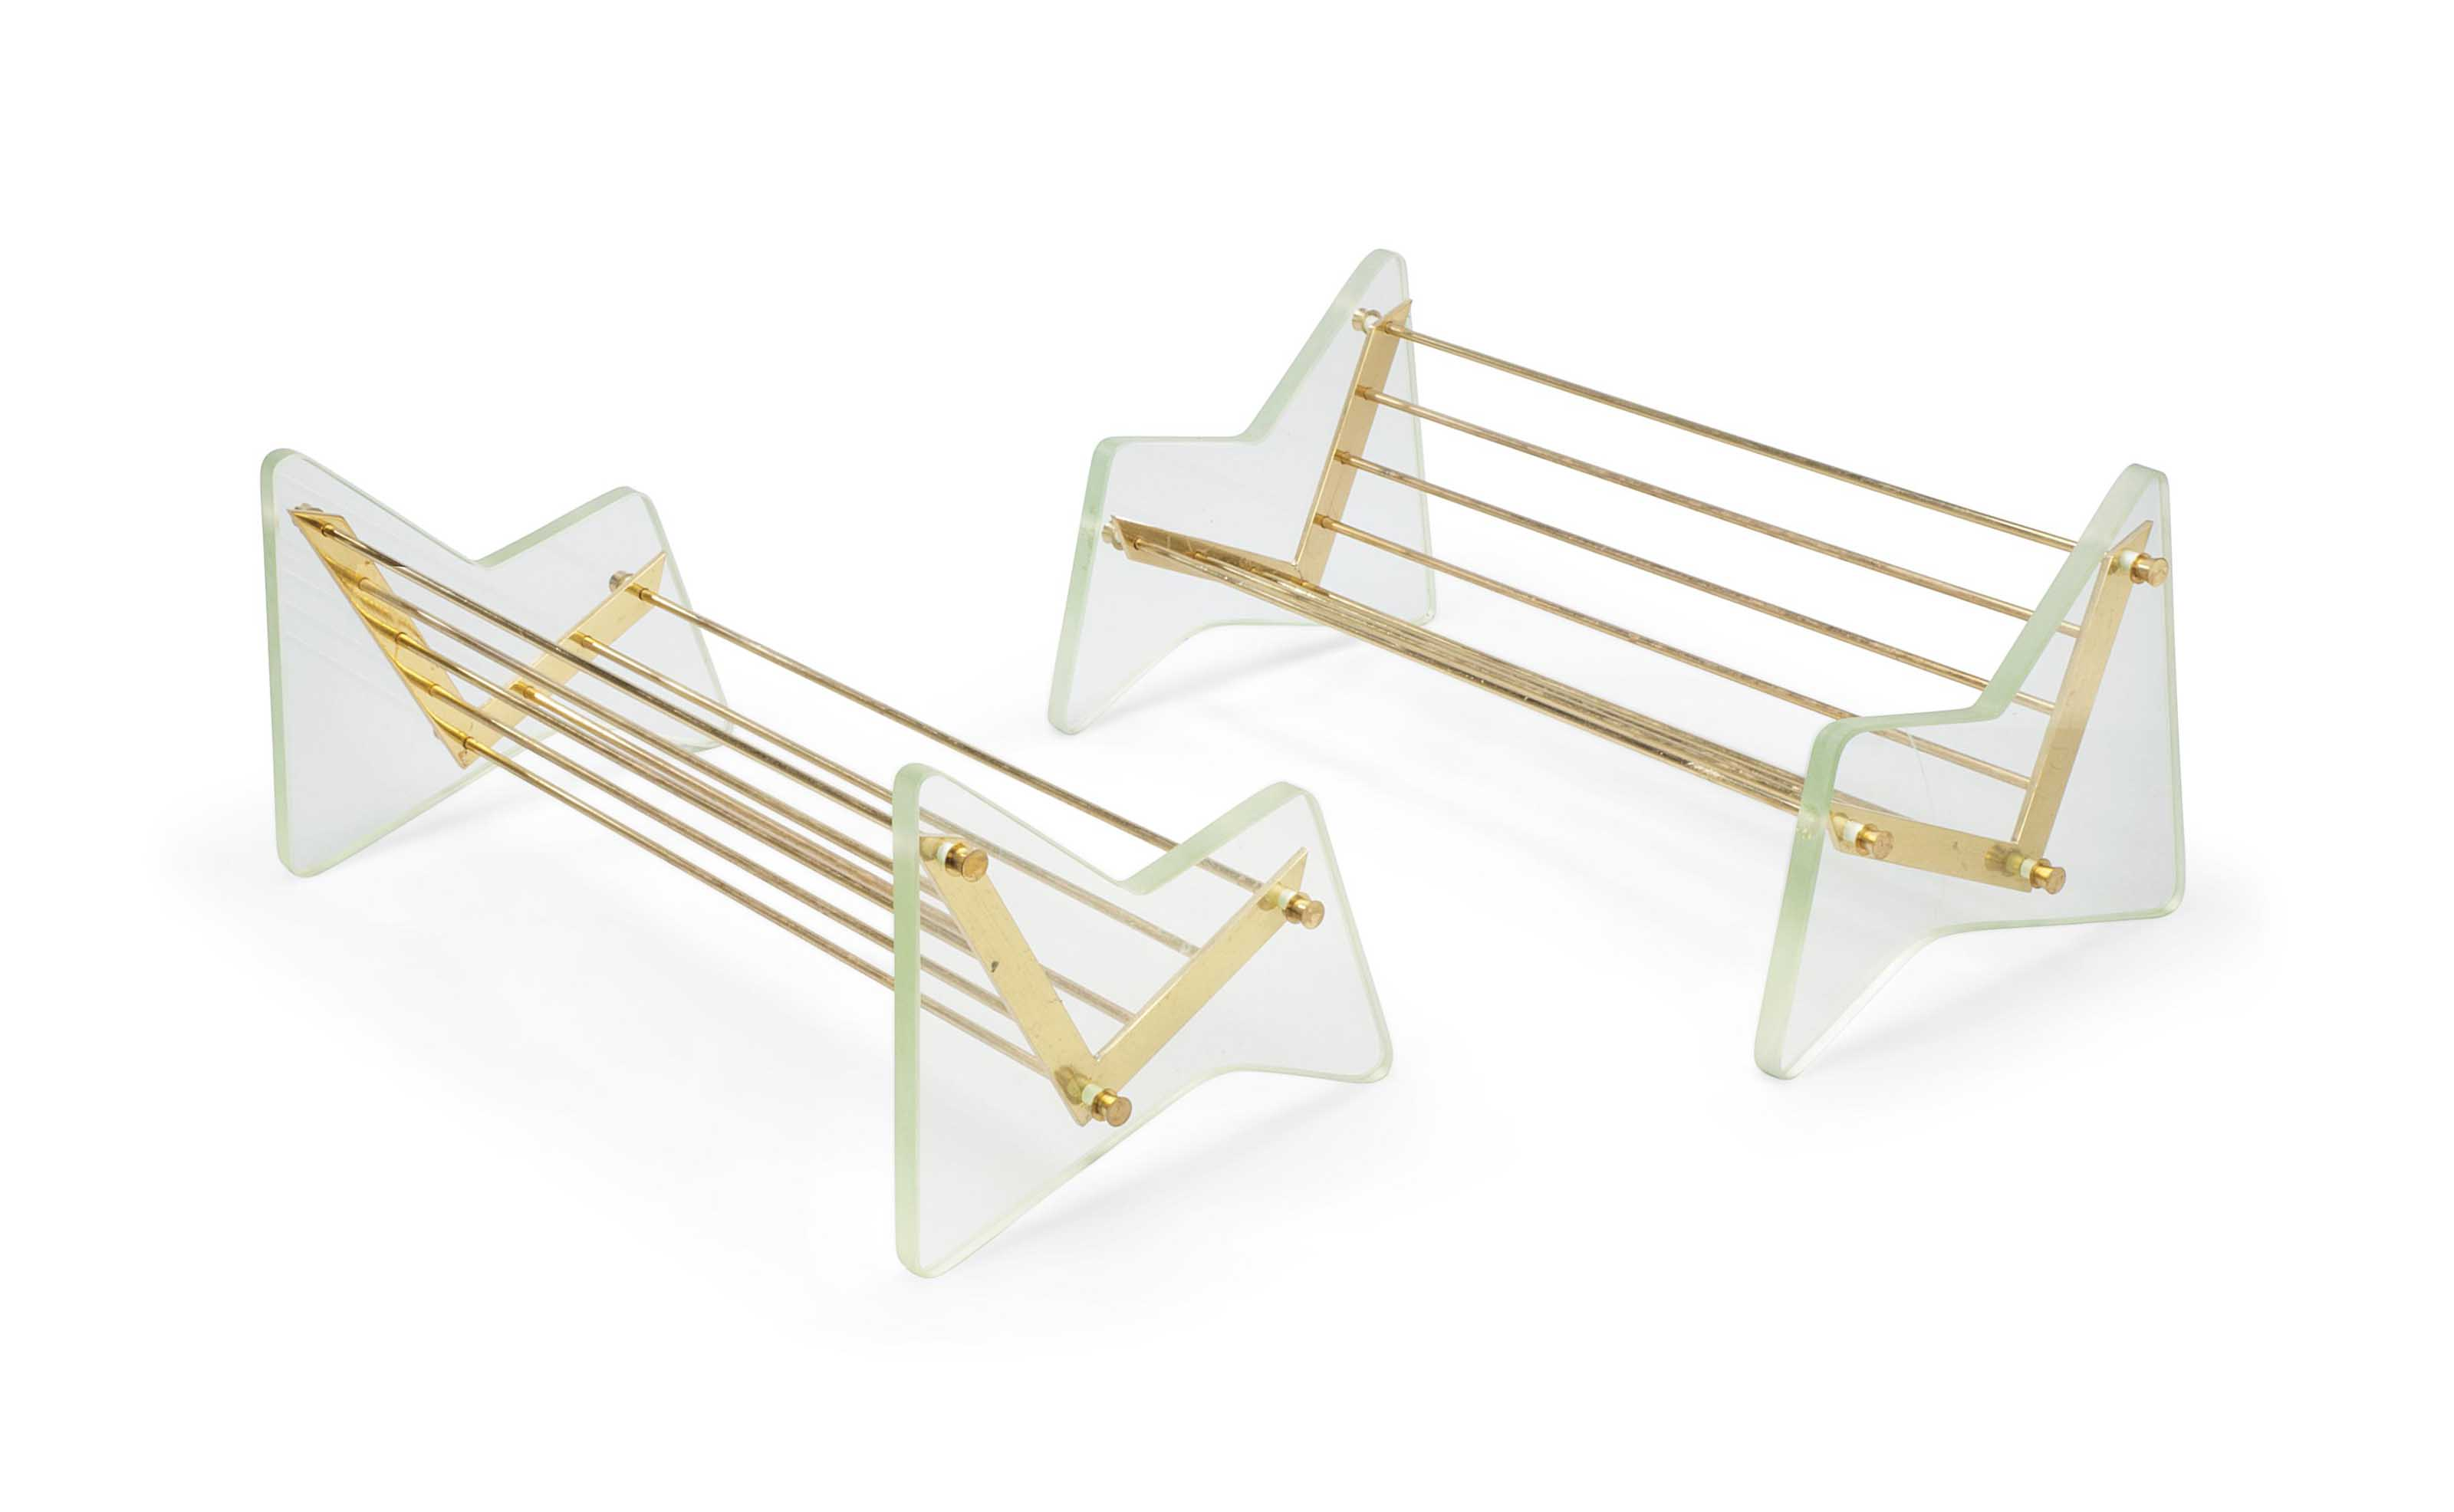 A PAIR OF FONTANA ARTE GLASS AND BRASS TABLE BOOK STANDS